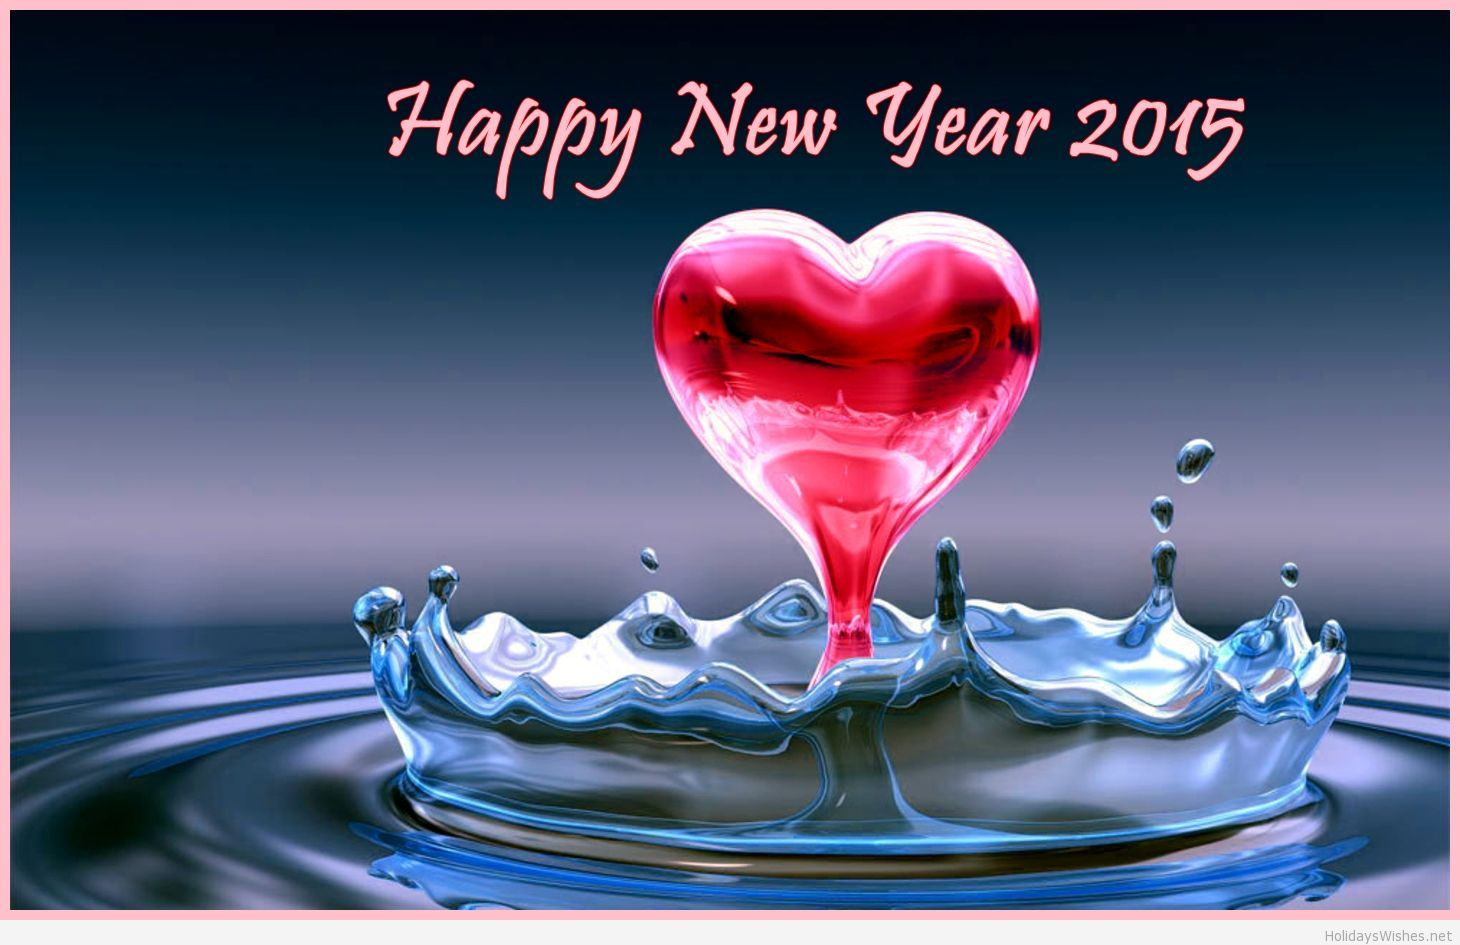 new years romance love wallpaper new year 2015 Awesome 3d 1460x945